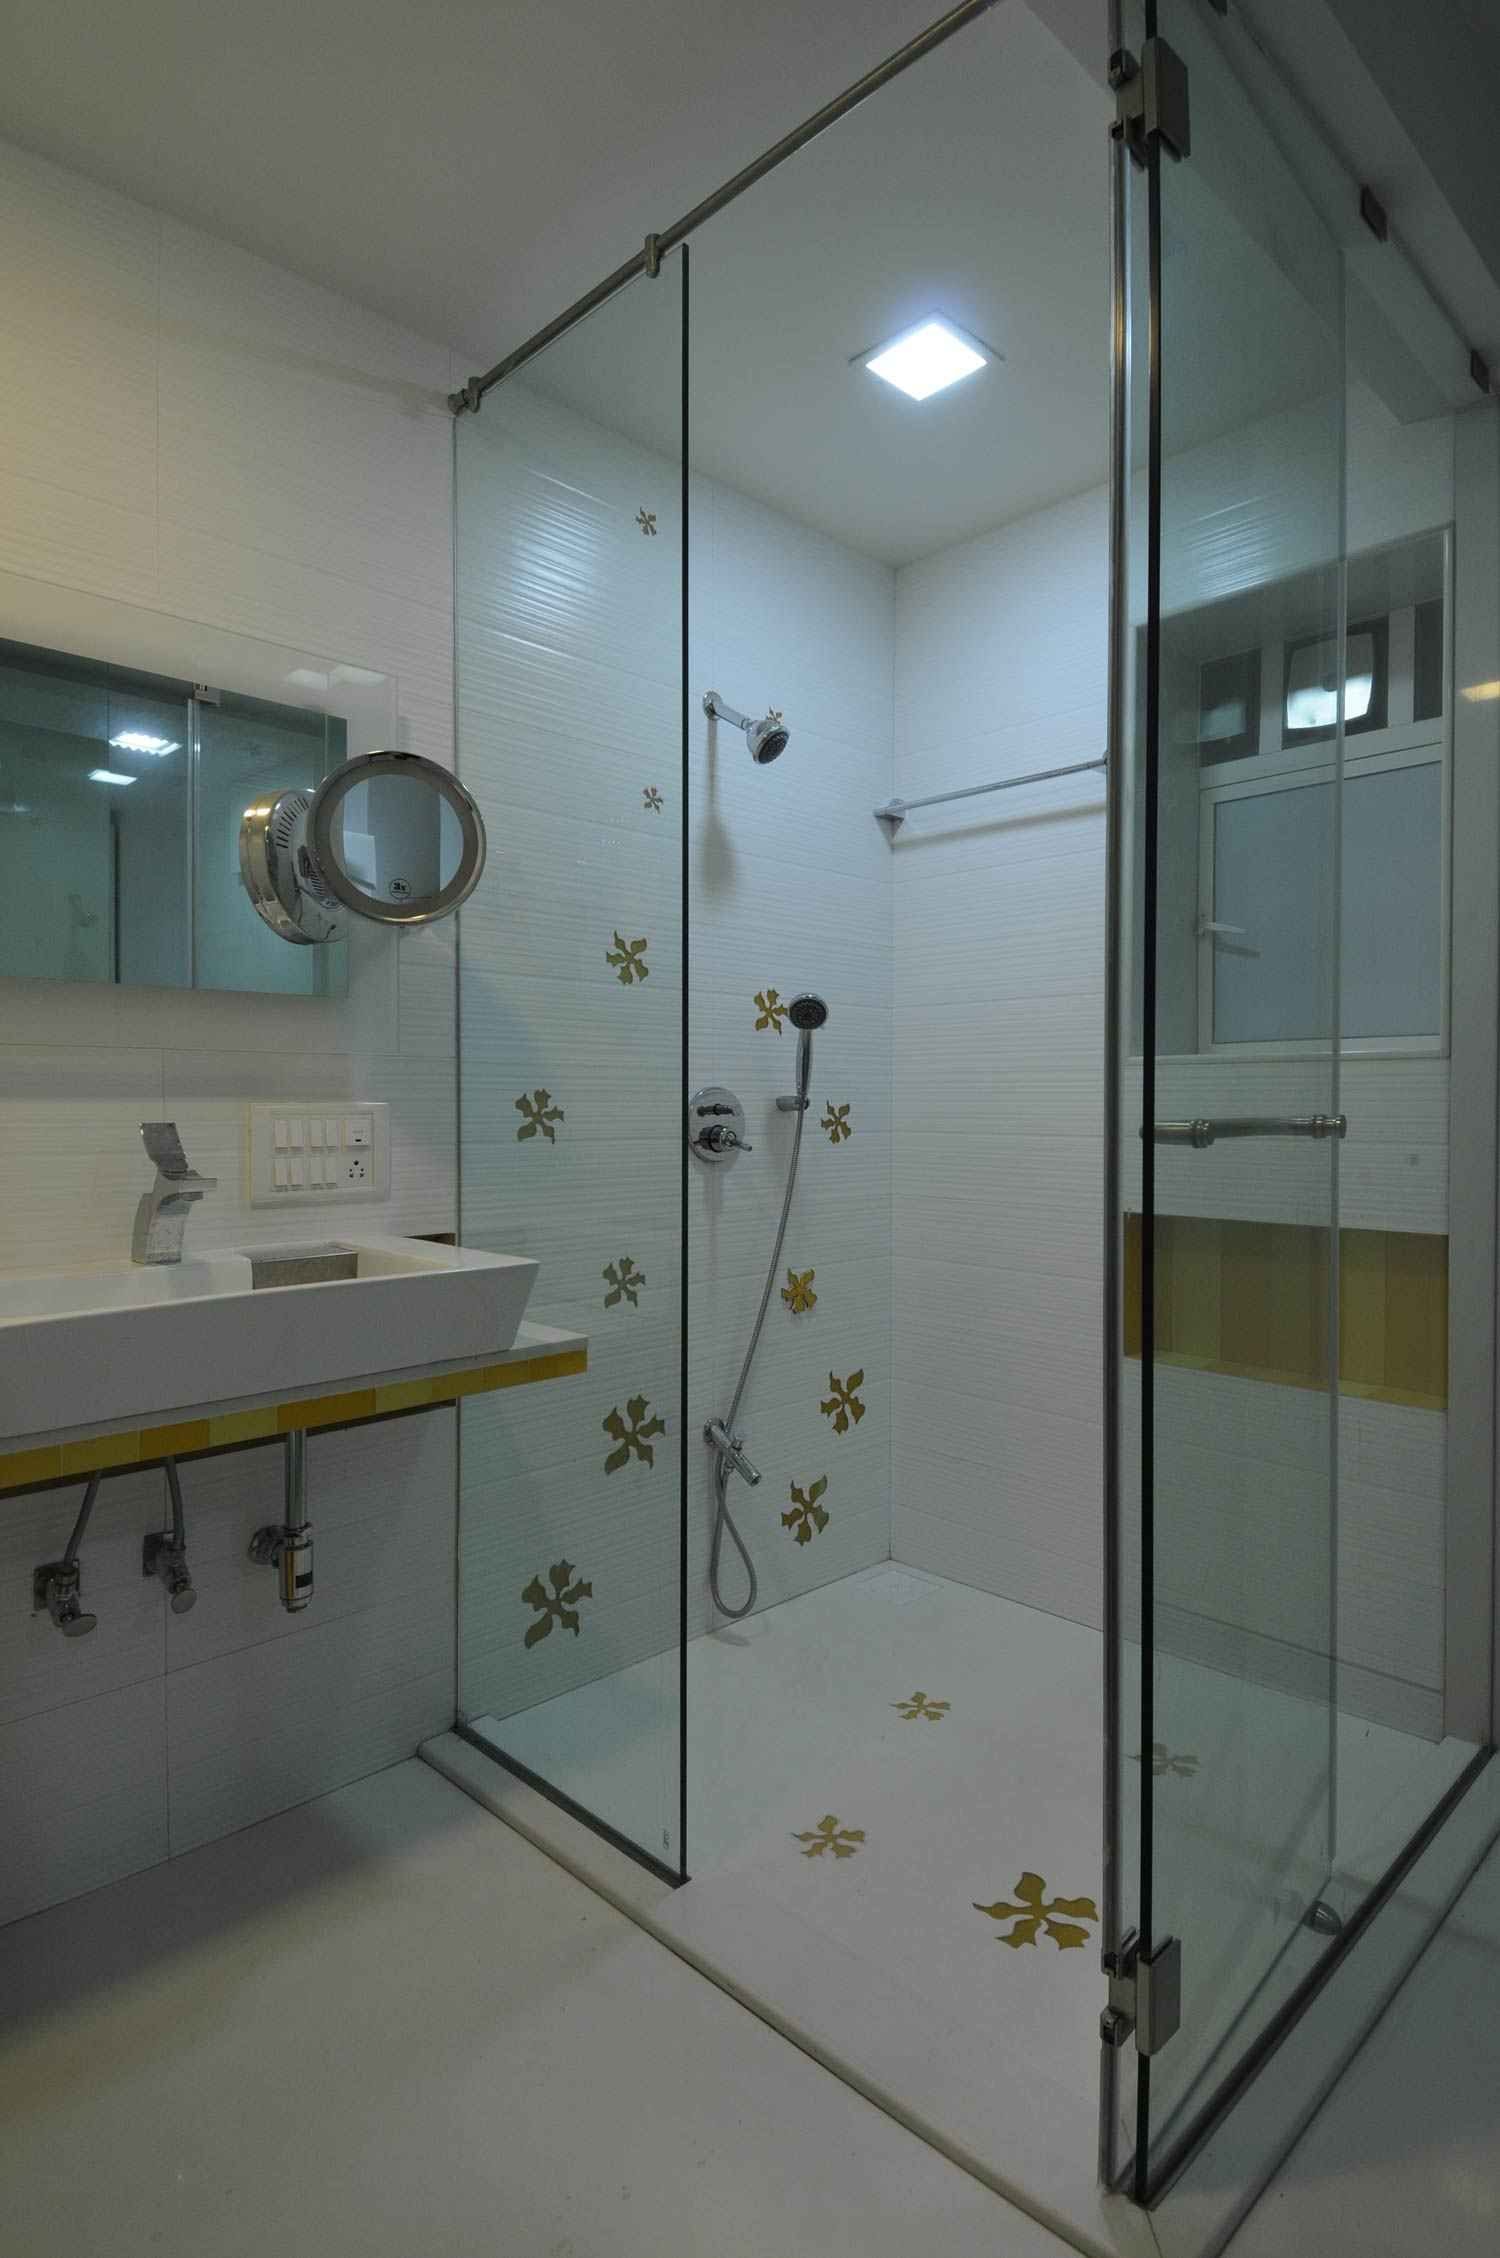 Bathroom With Shower Enclosure Design By Sonali Shah Architect In Mumbai India Best Bathroom Designs Amazing Bathrooms Small Bathroom